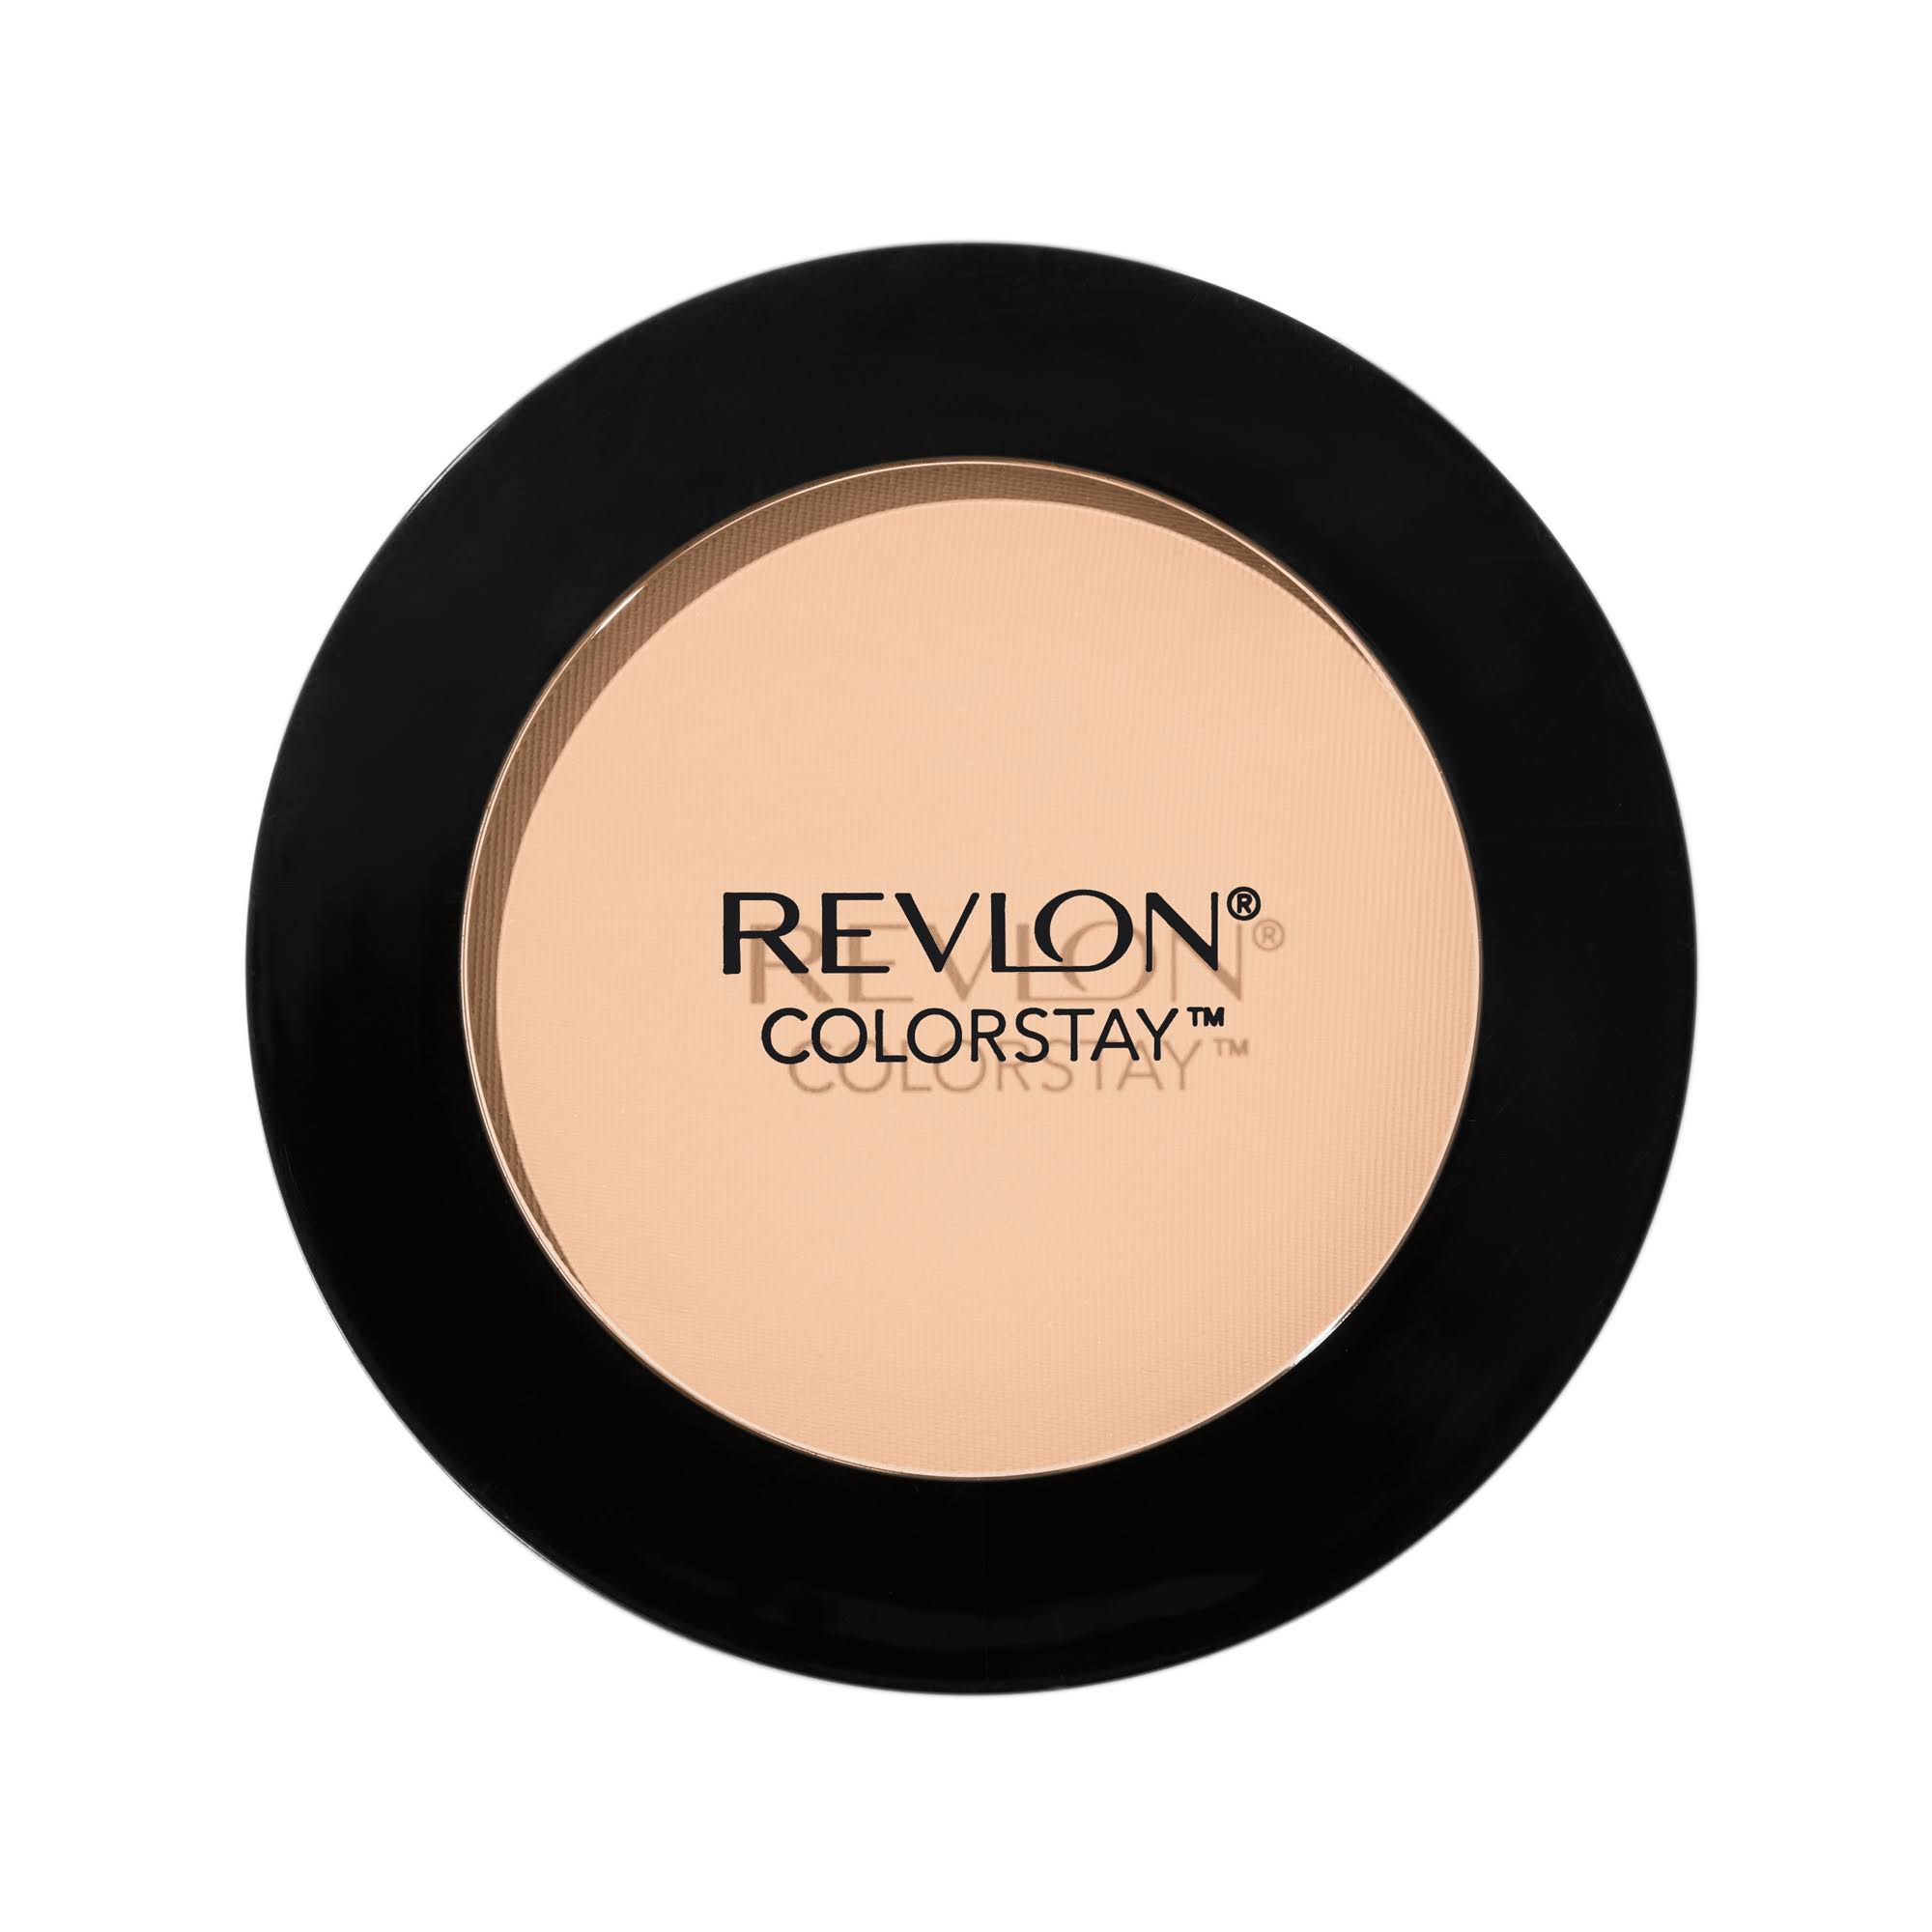 Revlon ColorStay Pressed Powder - 830 Light Medium